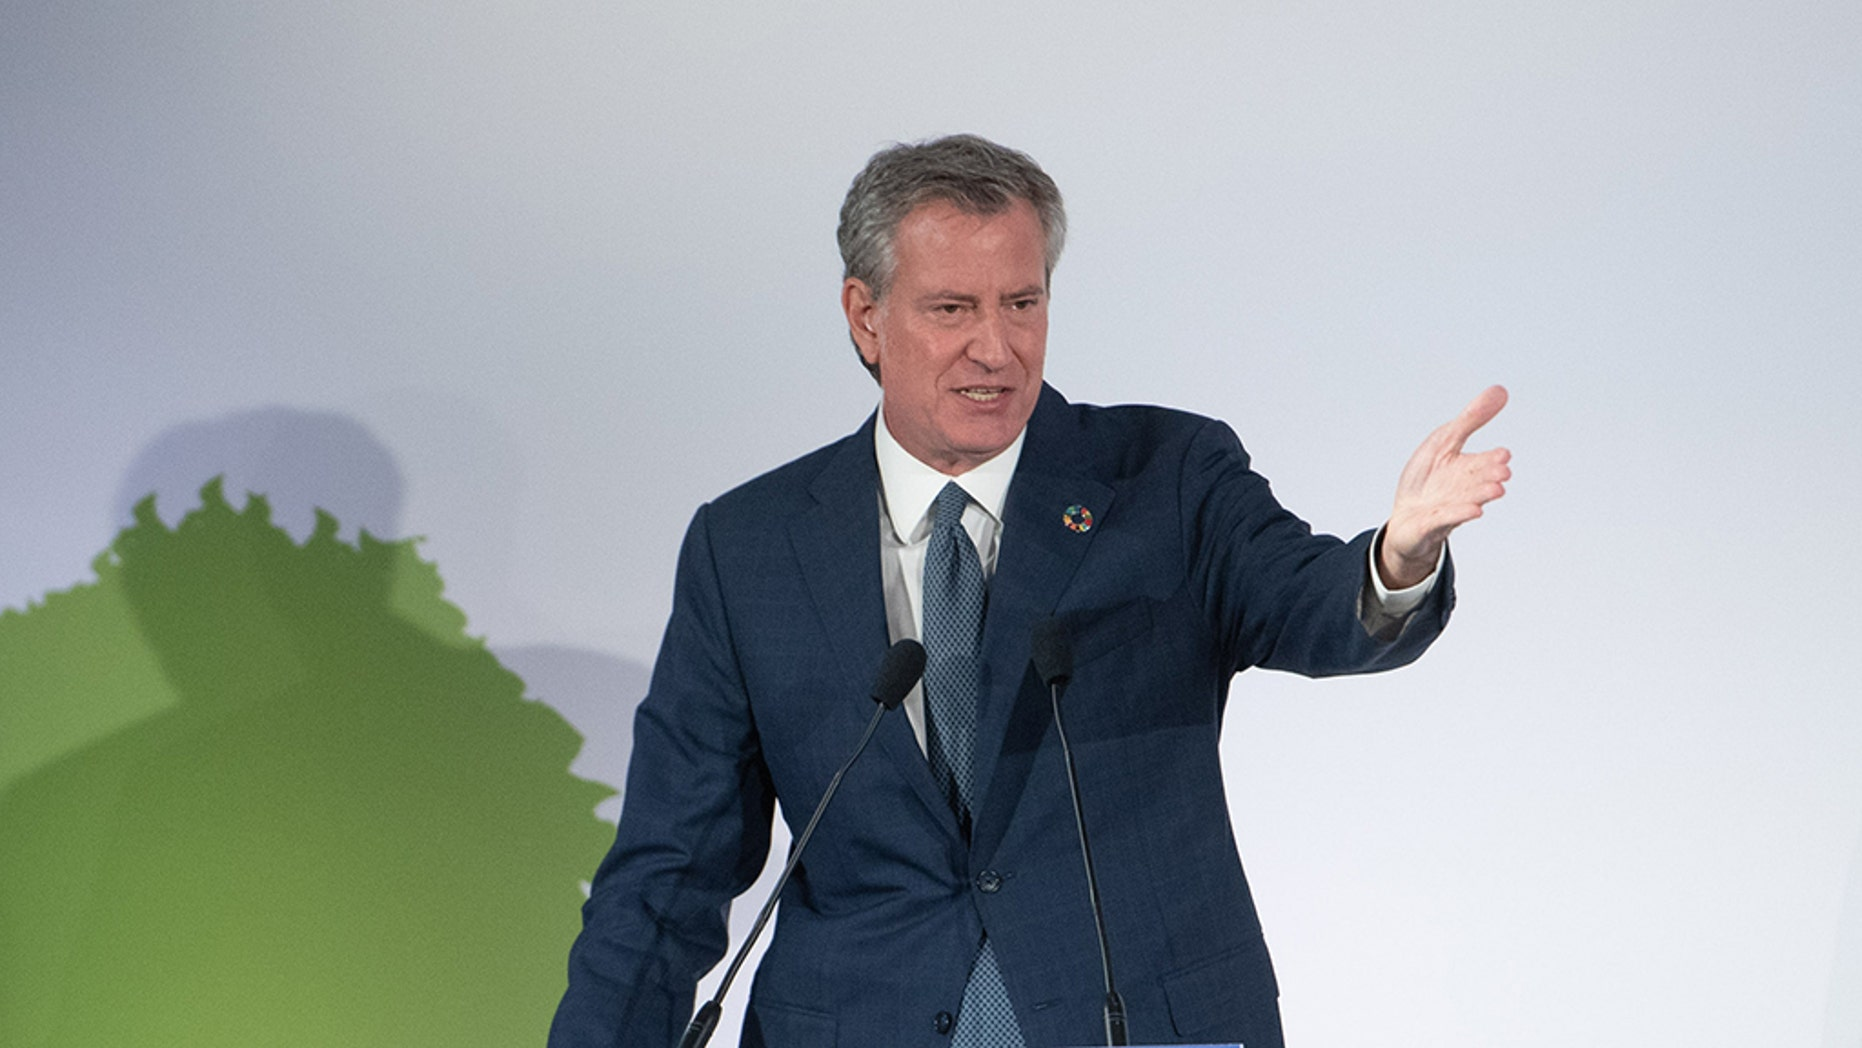 De Blasio dismisses homeless activist who interrupts his workout